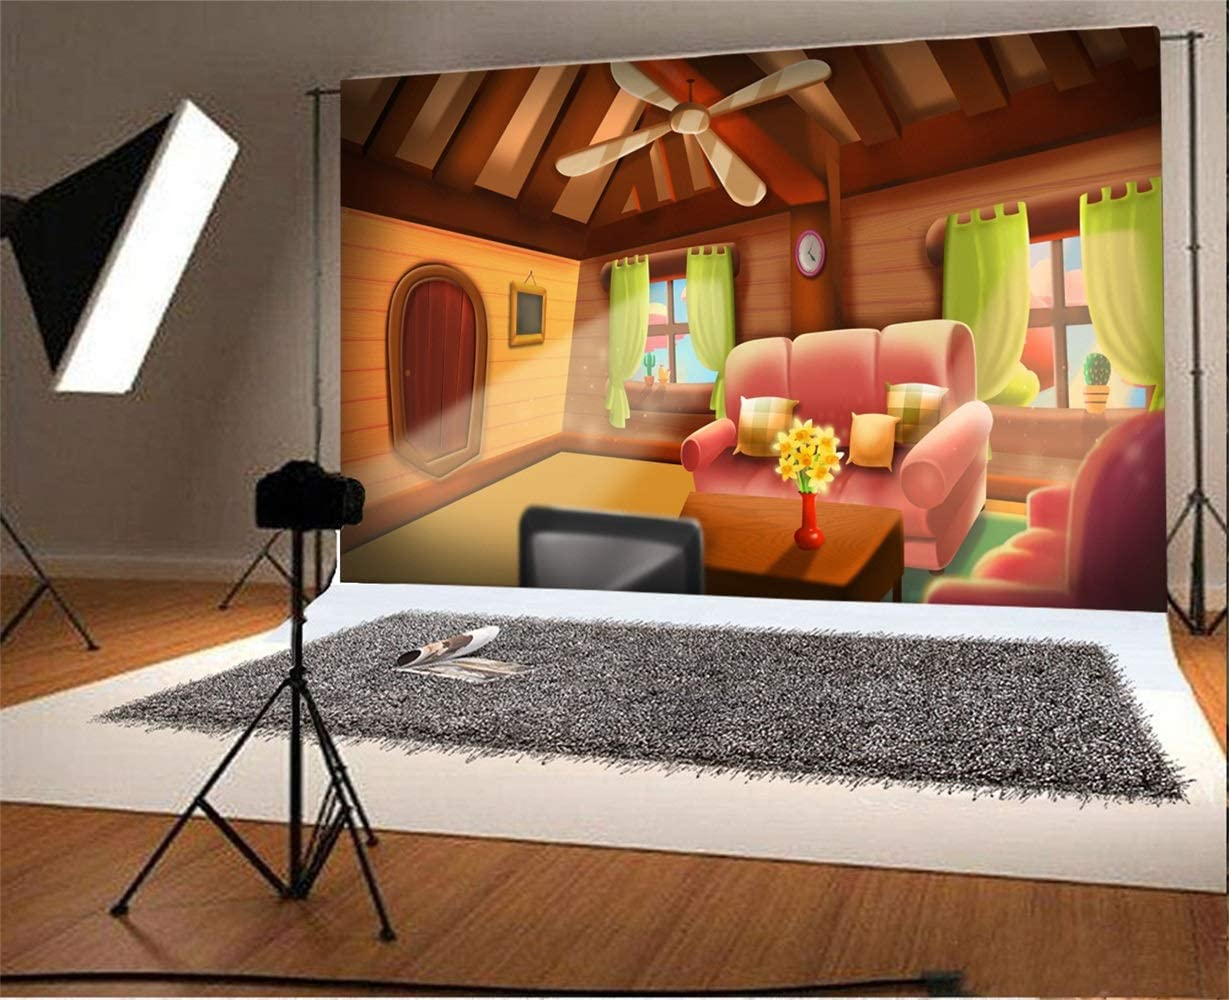 Laeacco 7x5ft Cartoon Fairytale Living Room Interior Backdrop Vinyl Warm Room Pink Sofa Cushions Flowers TV Set Air Fan Bright Windows Green Curtains Background Birthday Party Banner Child Baby Shoot